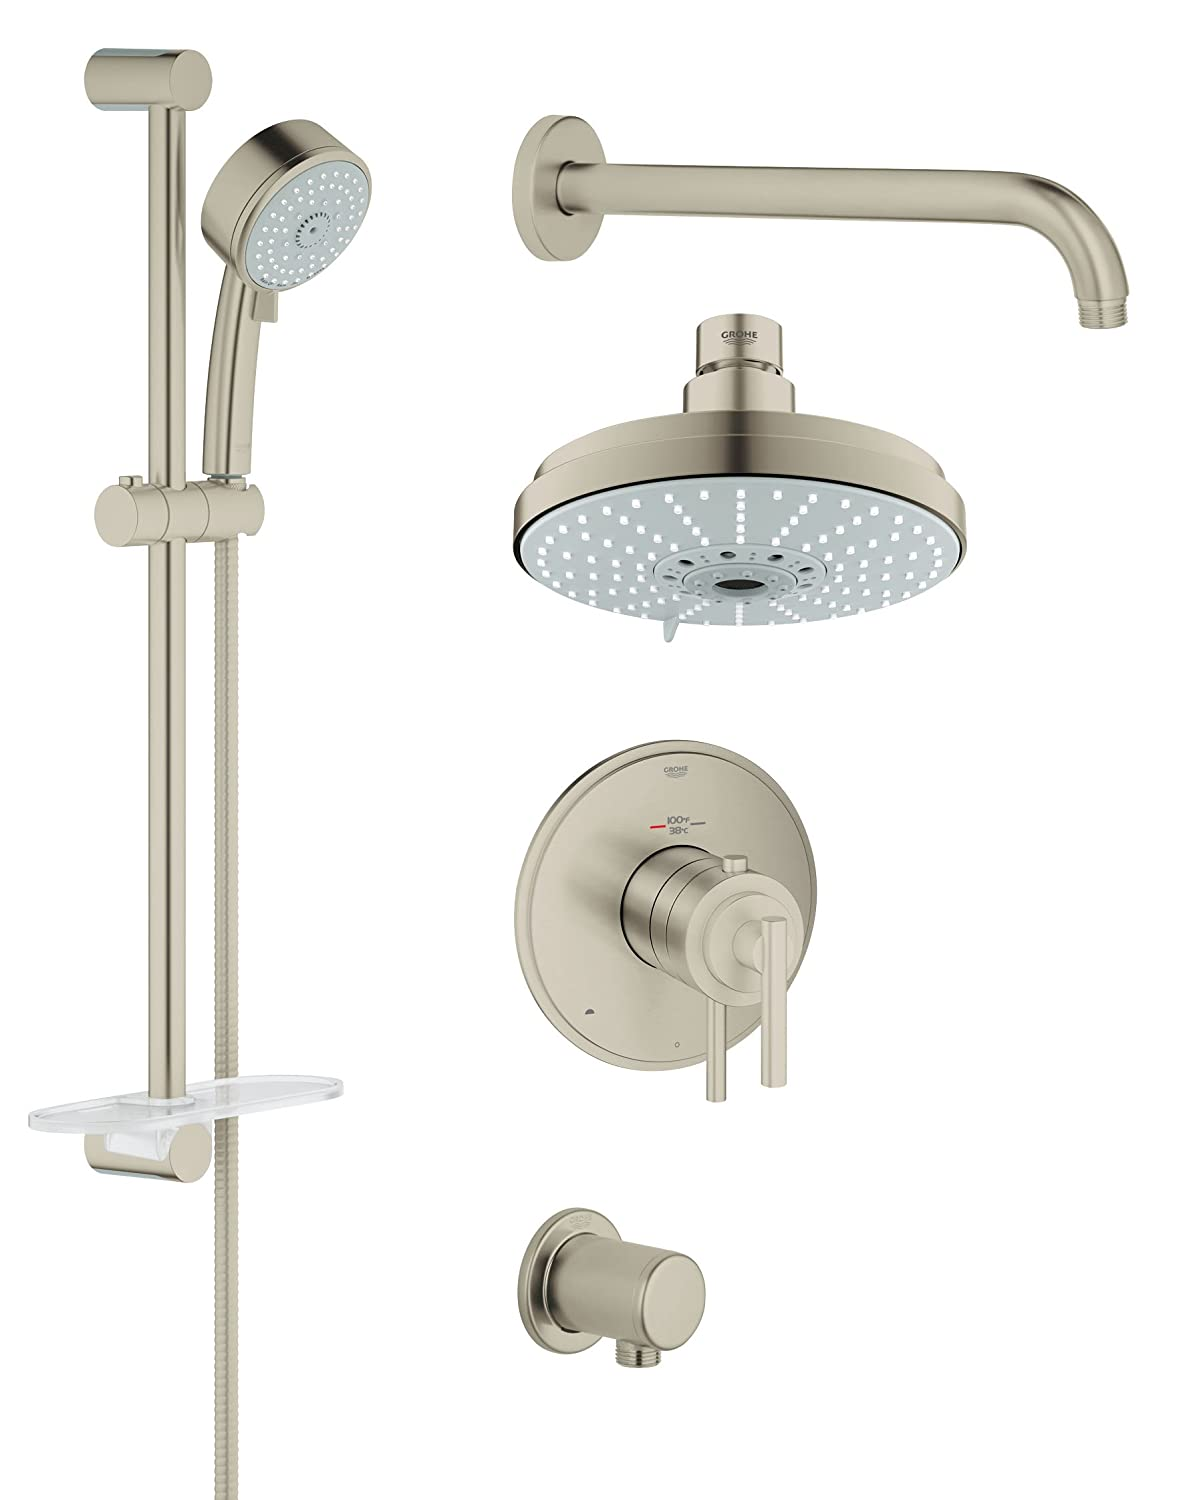 Grohflex Shower Set Timeless Dual Function Thm - 2.5 Gpm - - Amazon.com